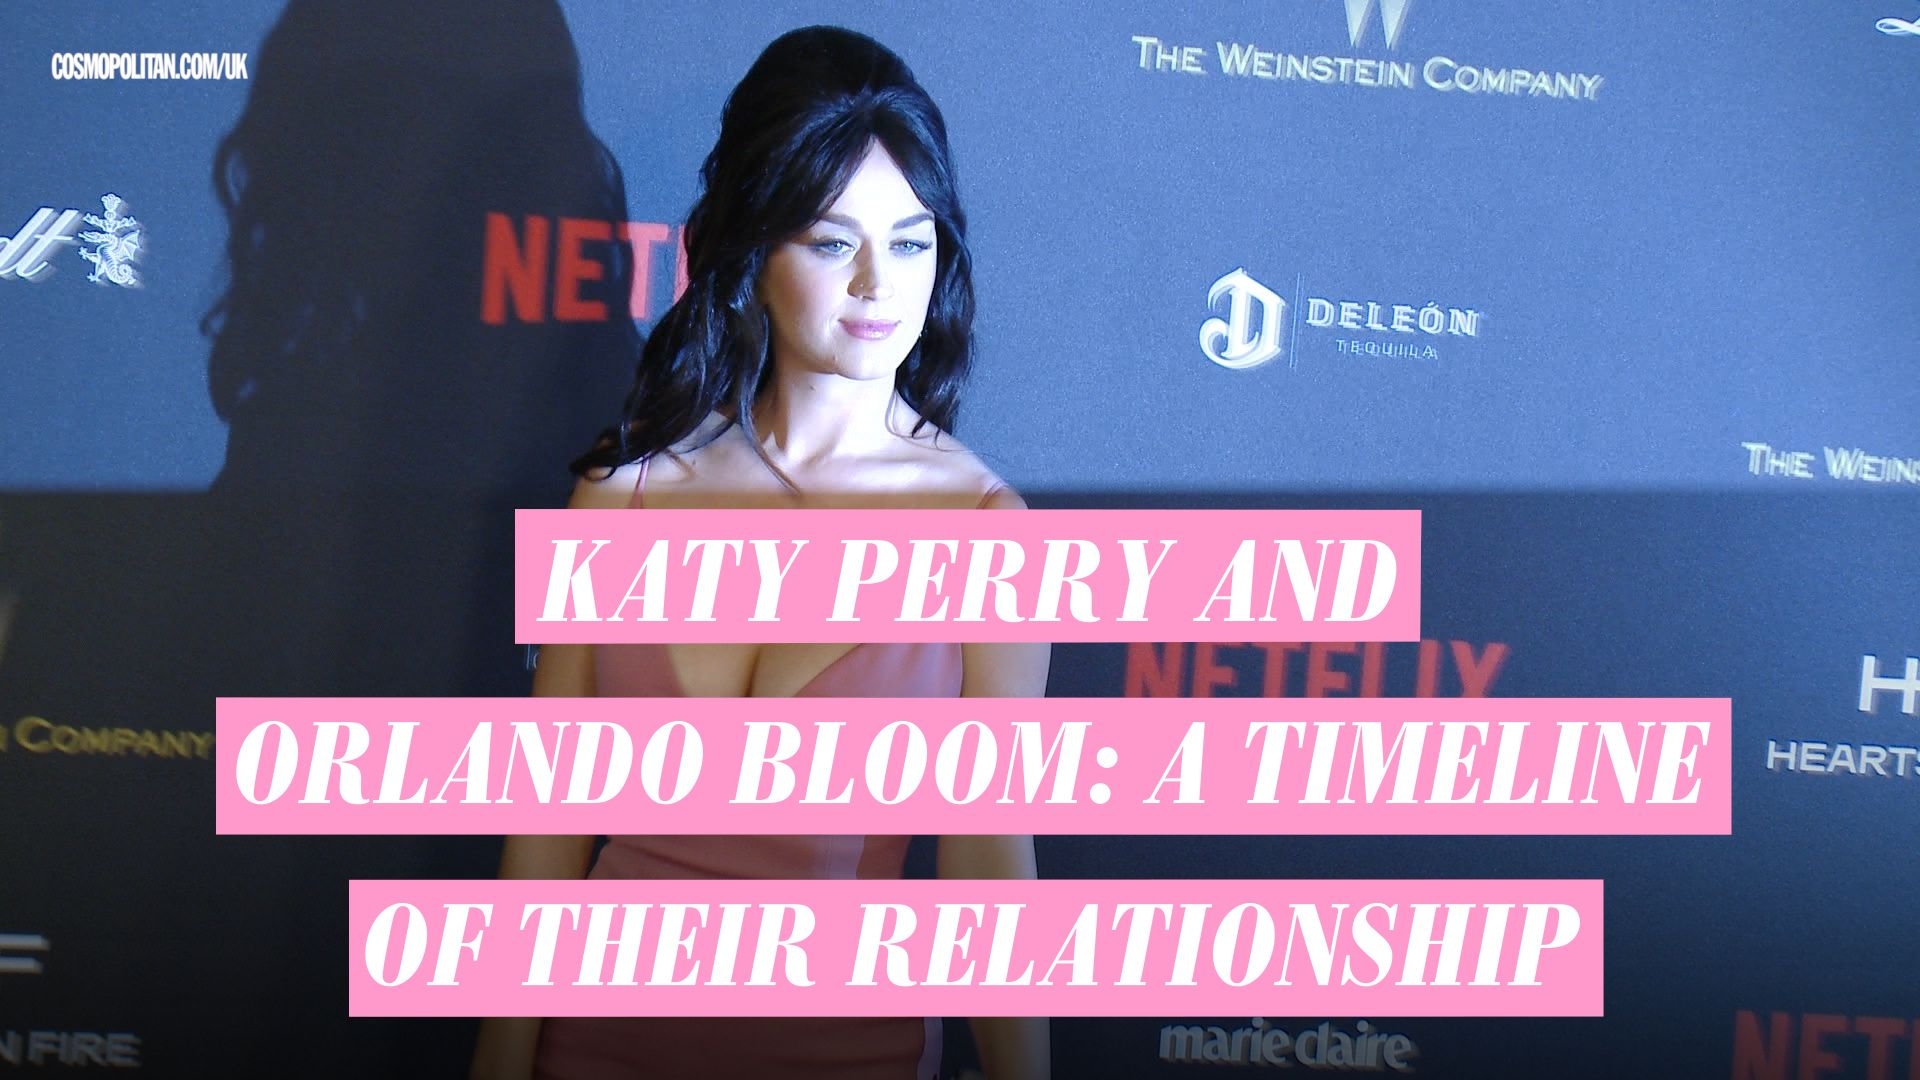 Katy Perry announces she's having a baby girl with Orlando Bloom